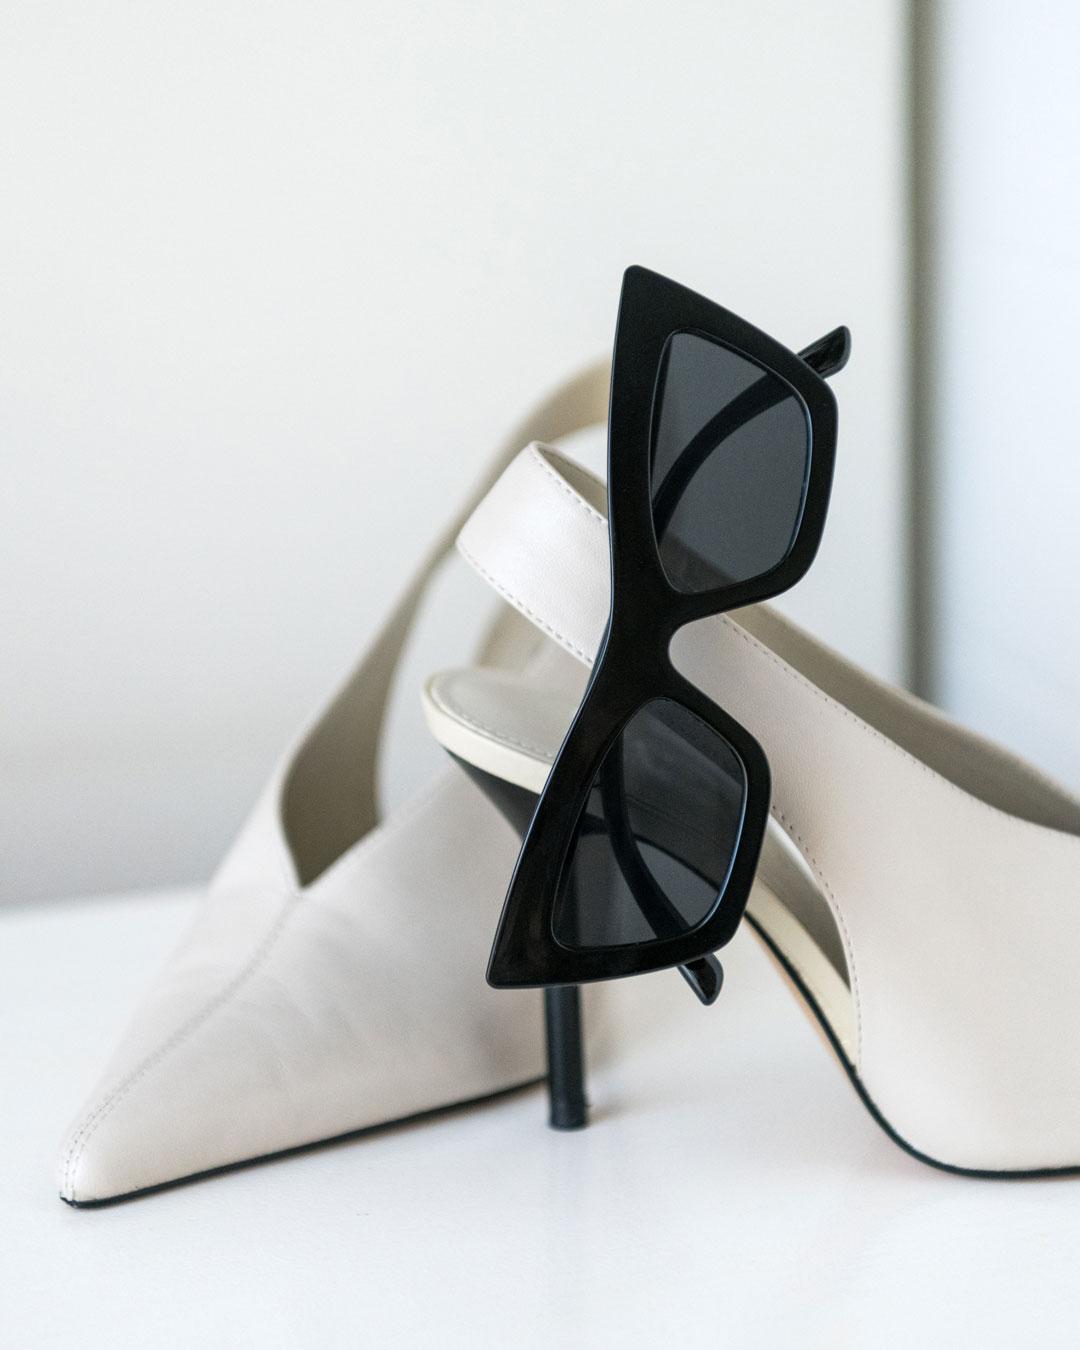 Black cat-eye sunglasses with UV400 protective lenses hang from a white heel.